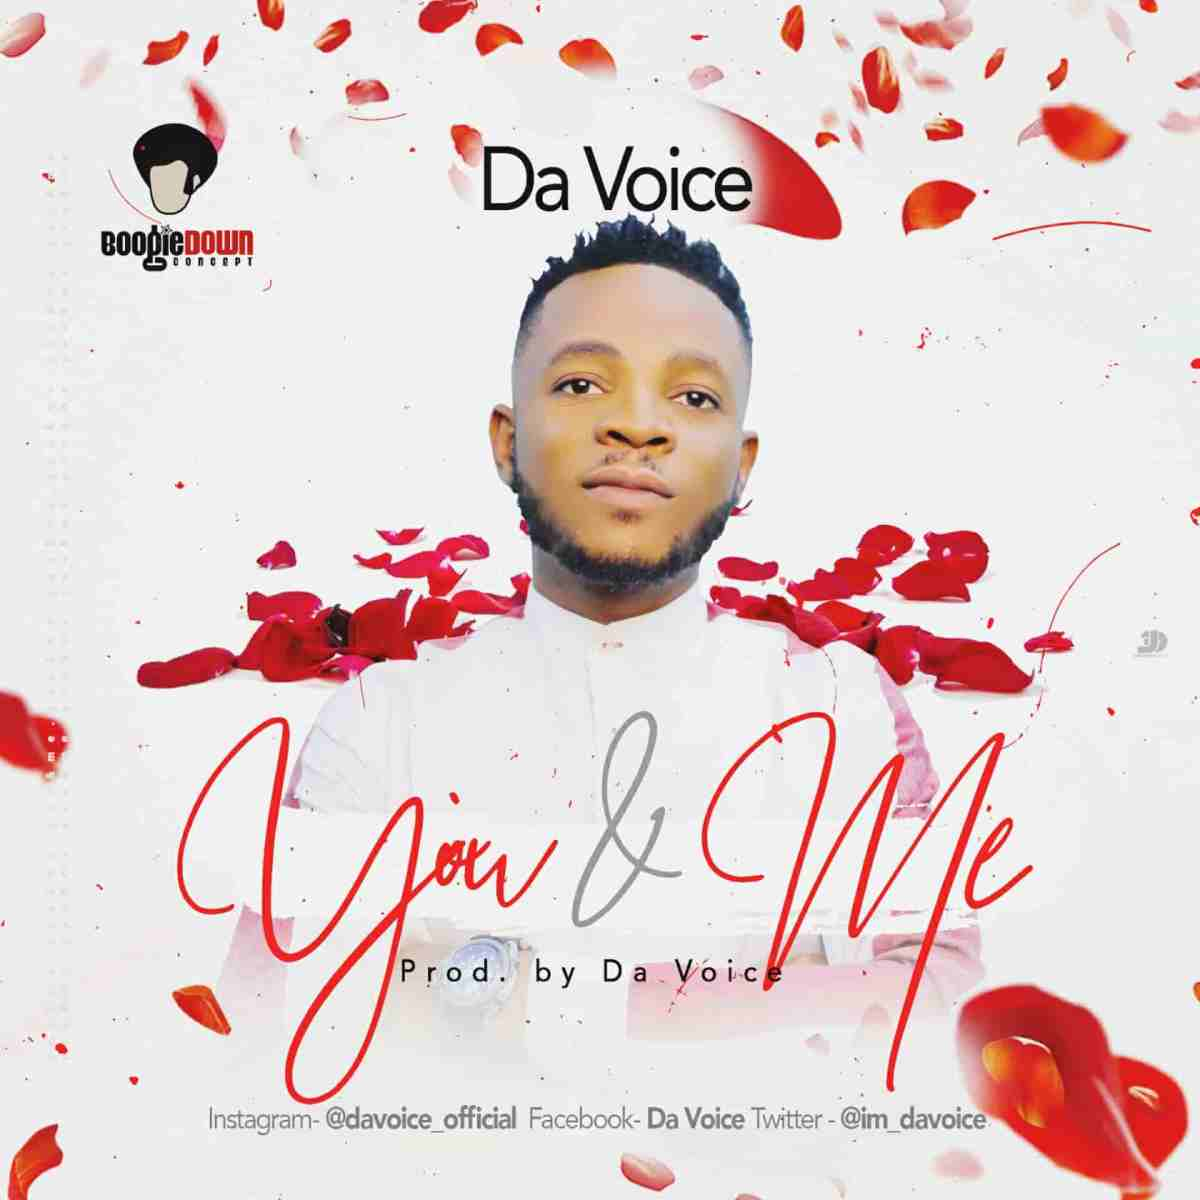 MUSIC: Da Voice - You and Me